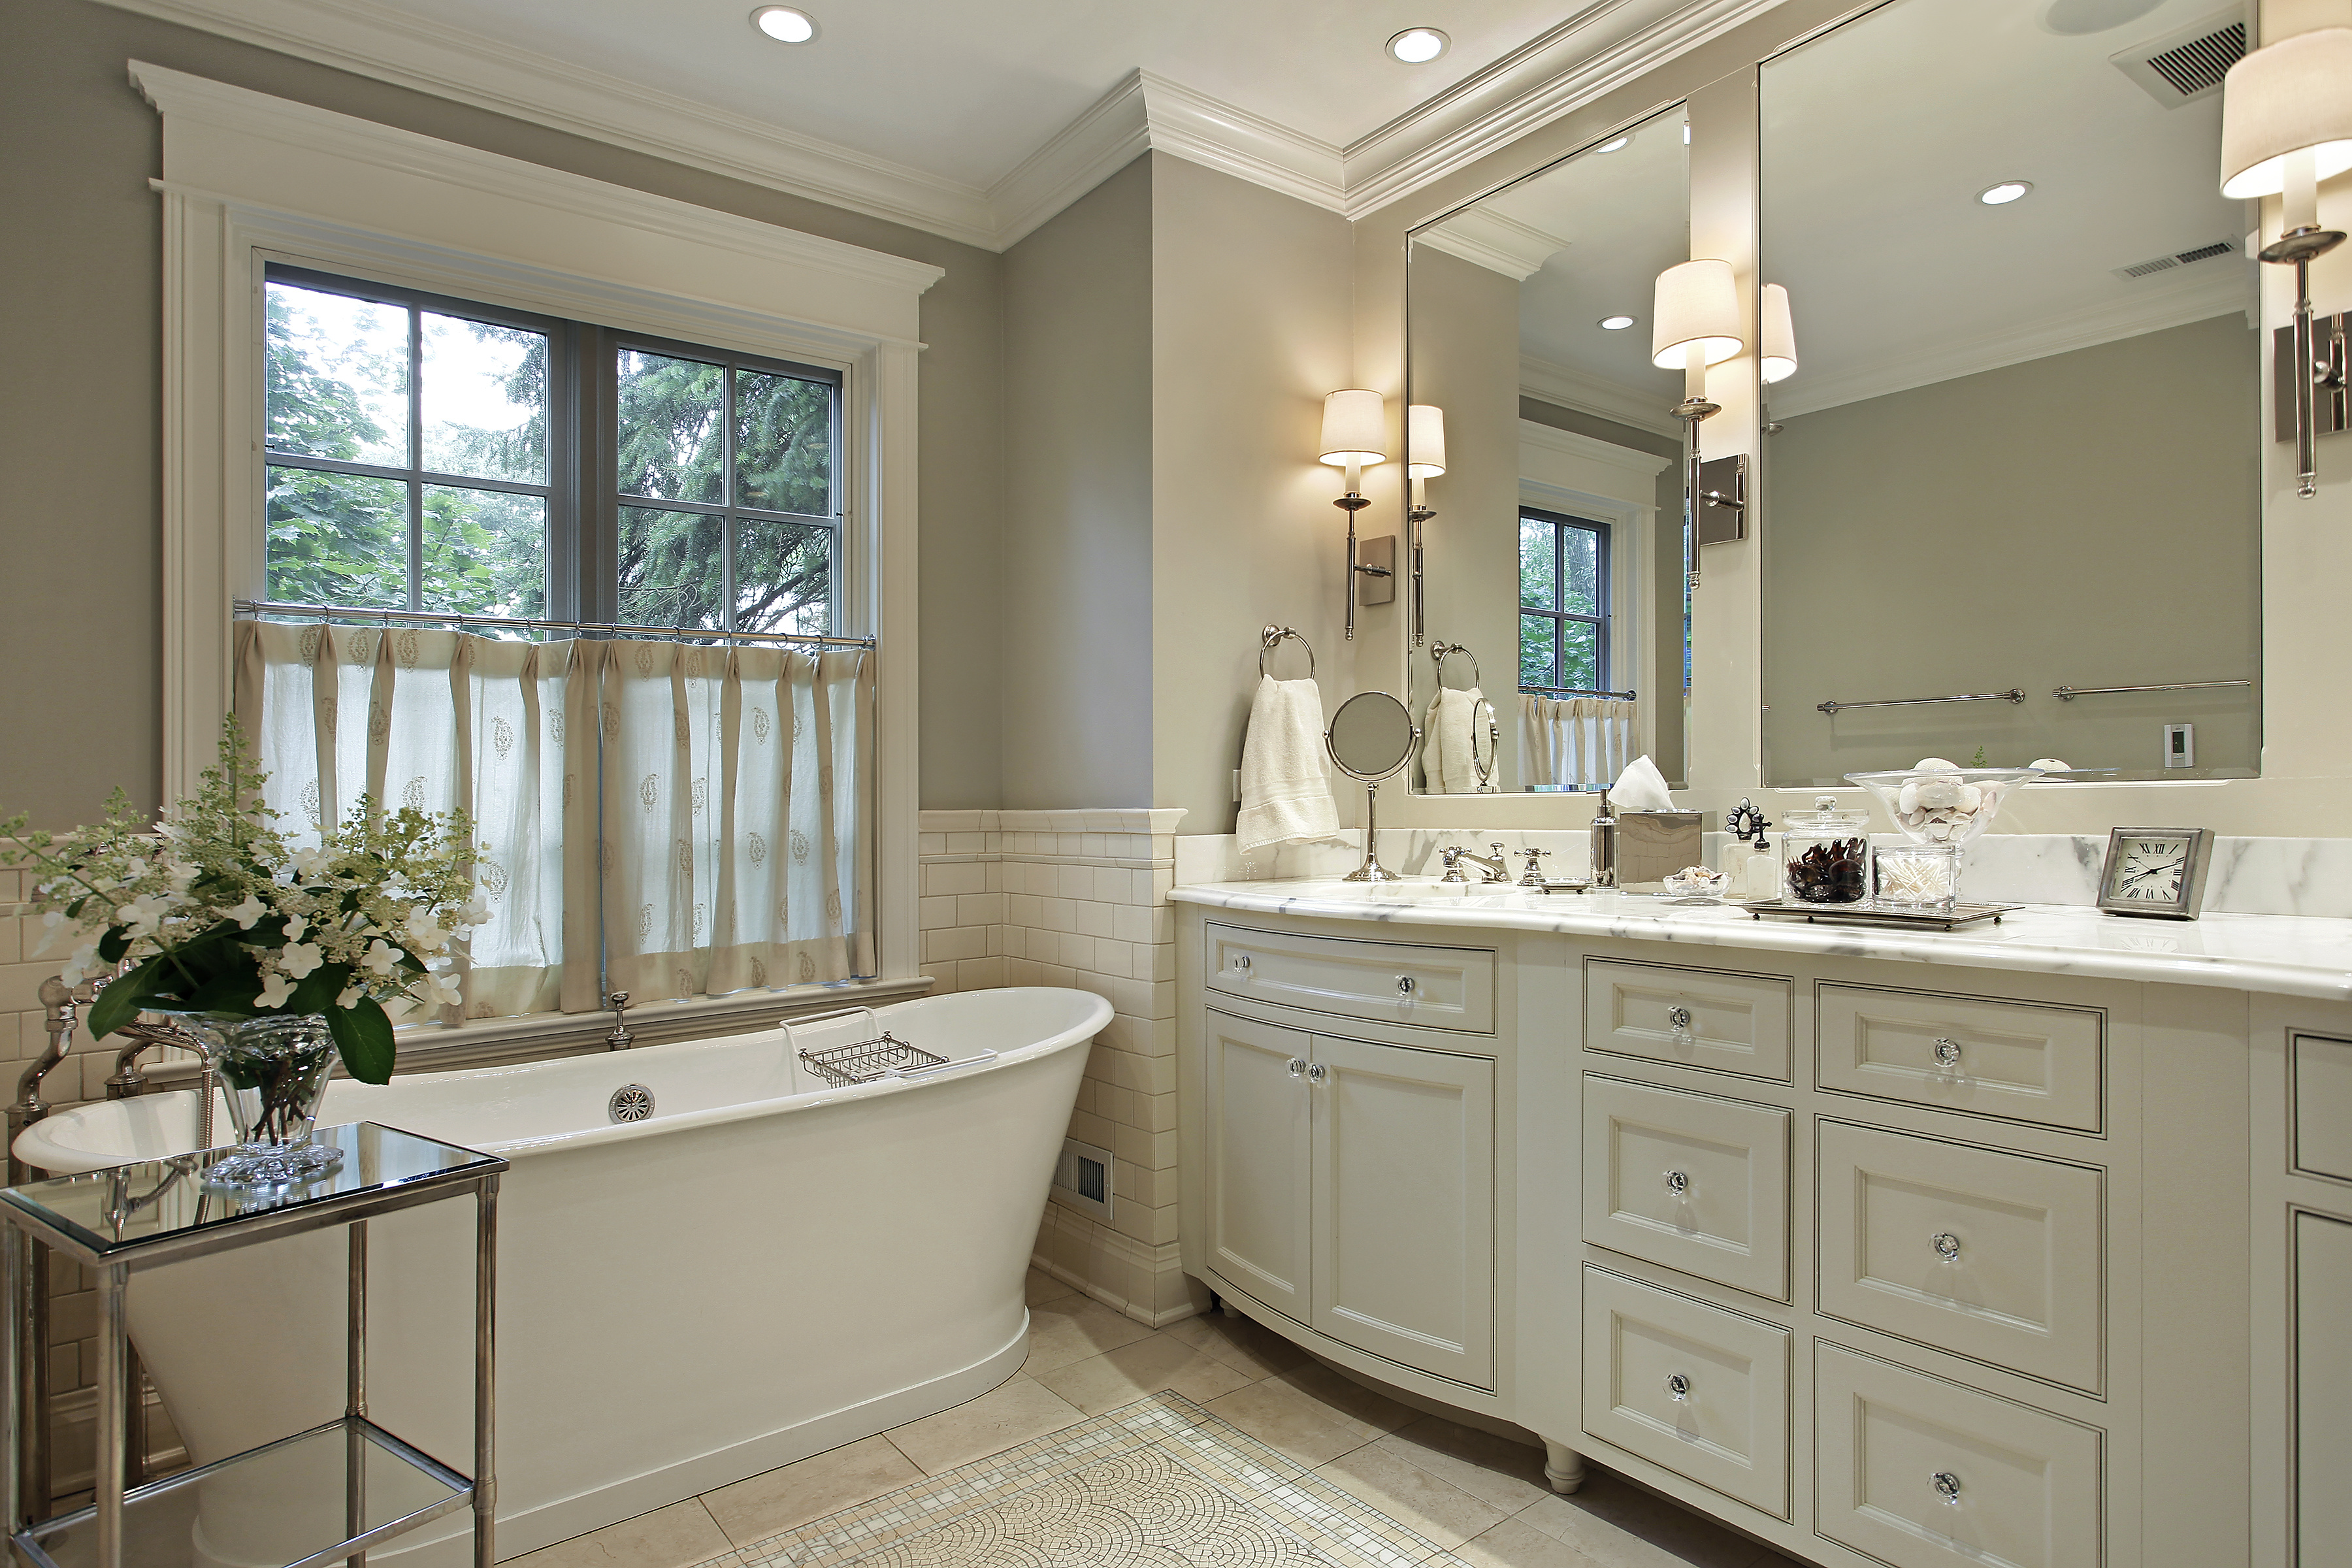 Bathroom Remodel with Marble countertop and elegant trim and wash tub